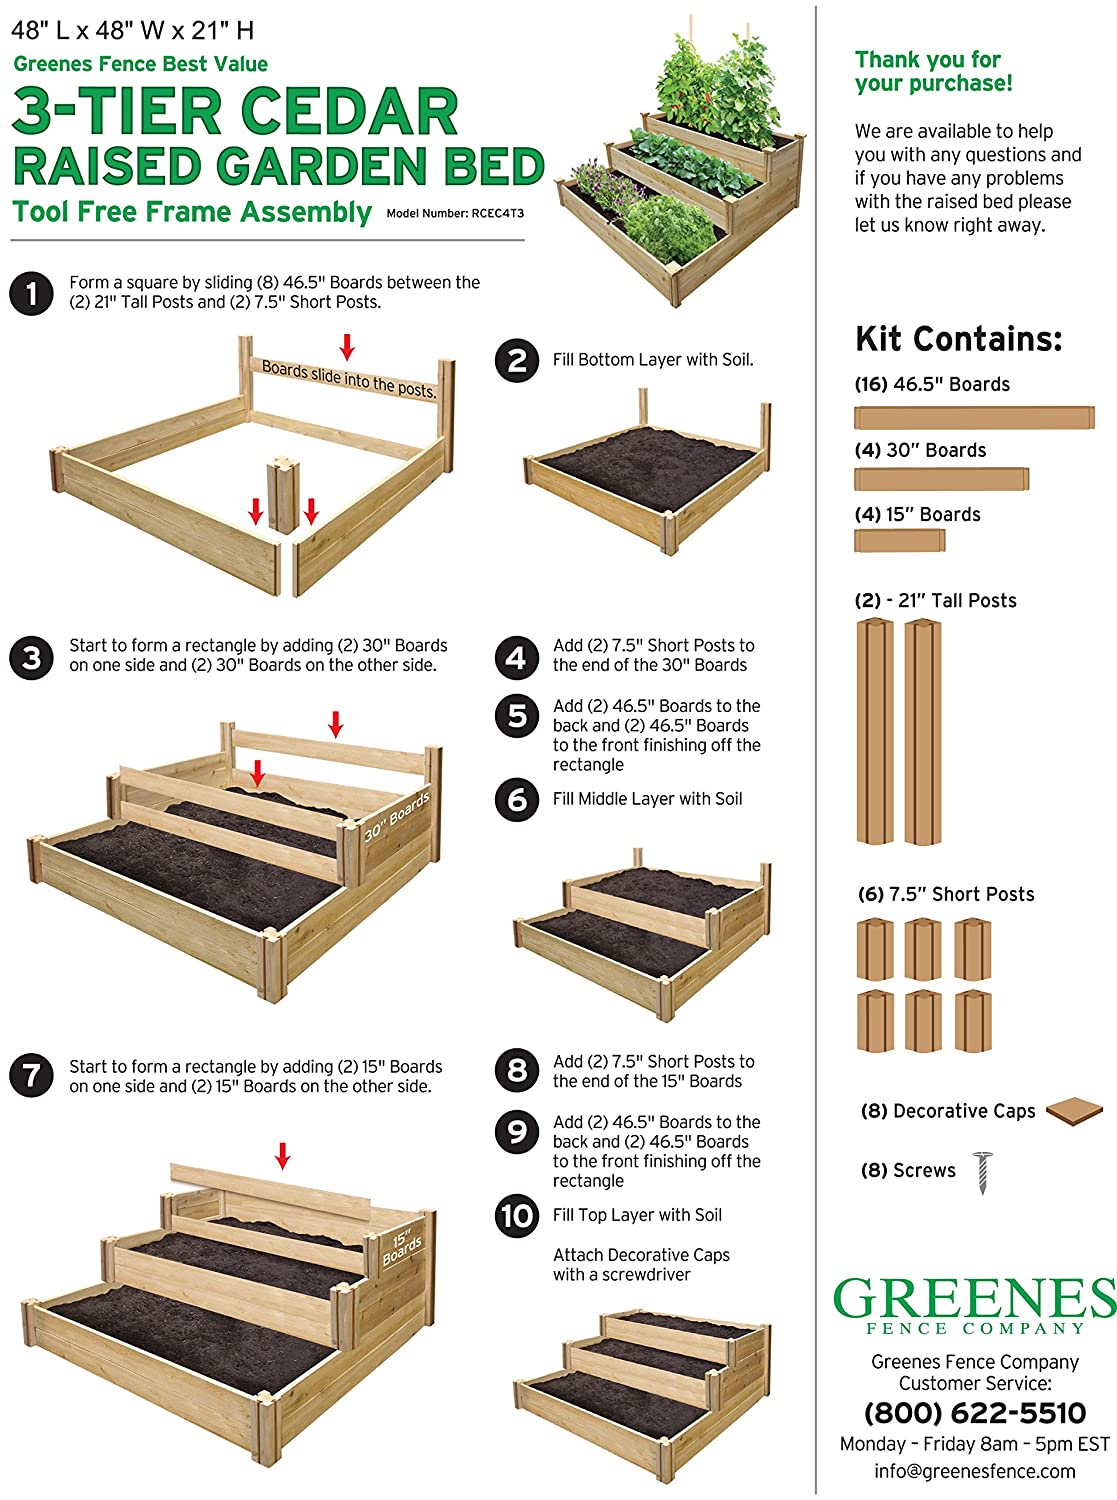 around for rabbit bed deer proofing greenes beds raised fences lawsonreport fence garden fencing greene